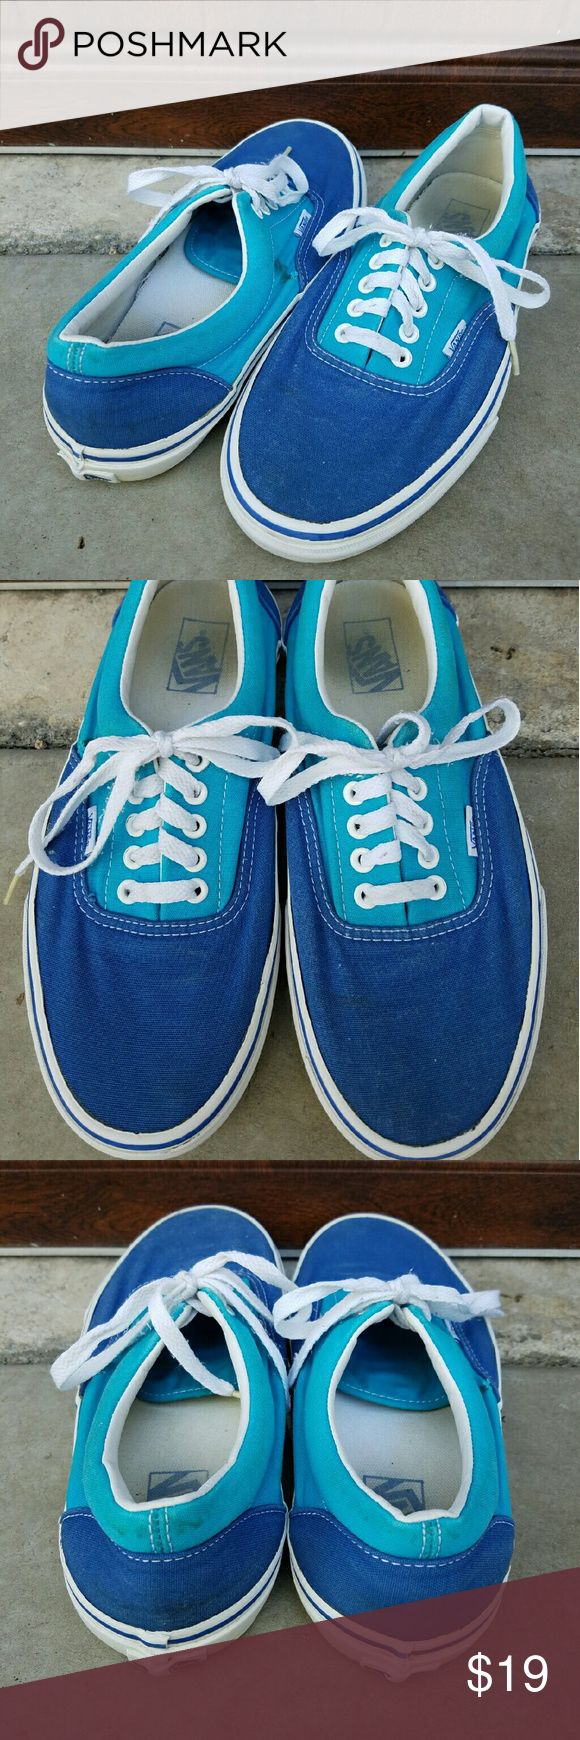 Cute Blue Vans These blue Vans were hardly worn. They have some staining on the back heels, a small black stain & small tear on the right shoe but not all that noticeable. There's also minimal pulling of the rubber away from the canvas but the soles are in great condition. Vans Shoes Sneakers